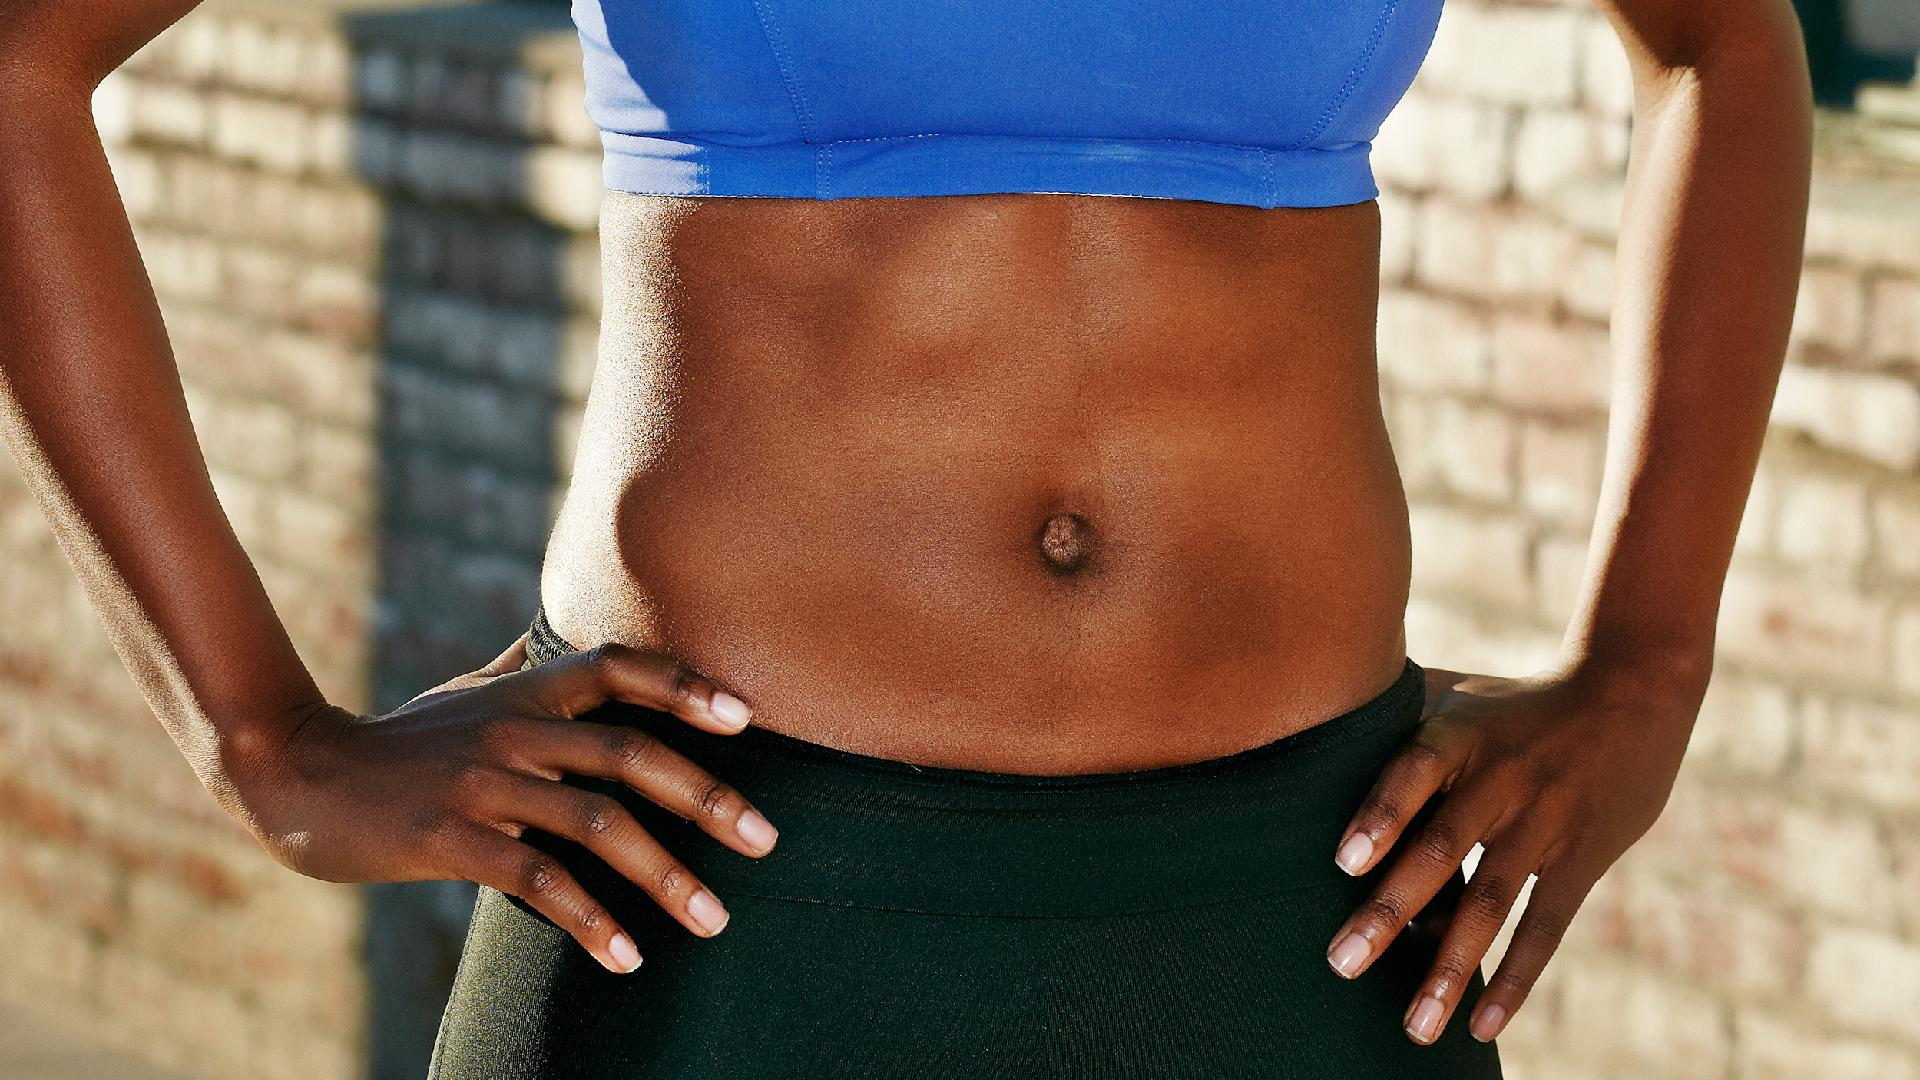 What is belly fat anyway?